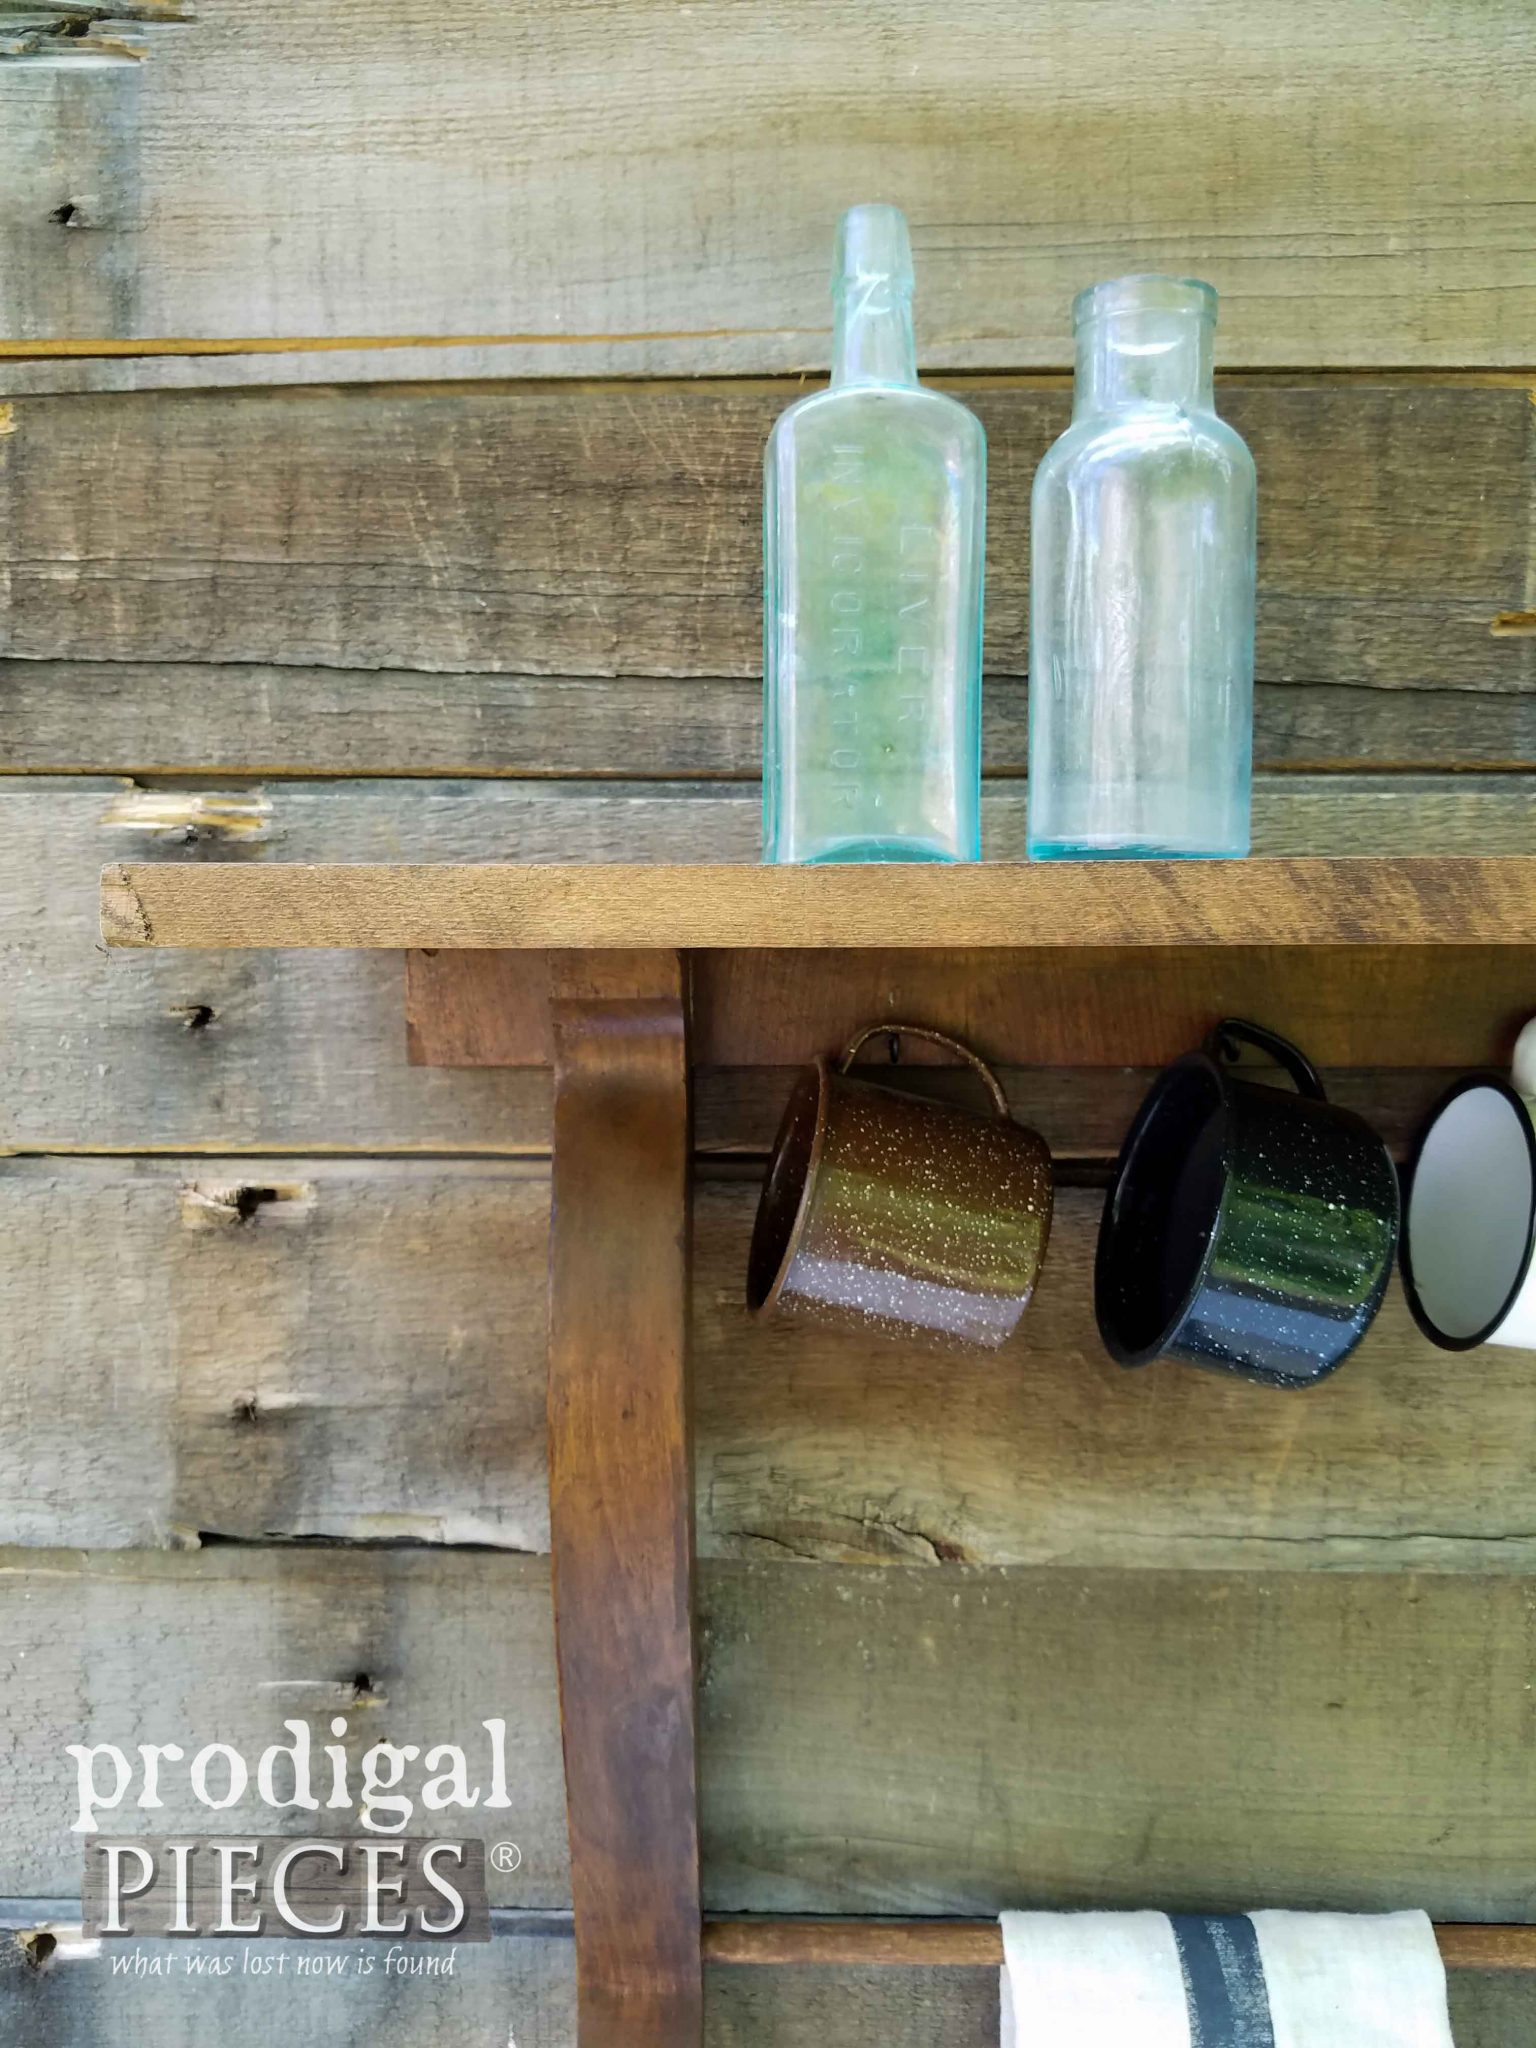 Rustic Farmhouse Decor by Prodigal Pieces | prodigalpieces.com